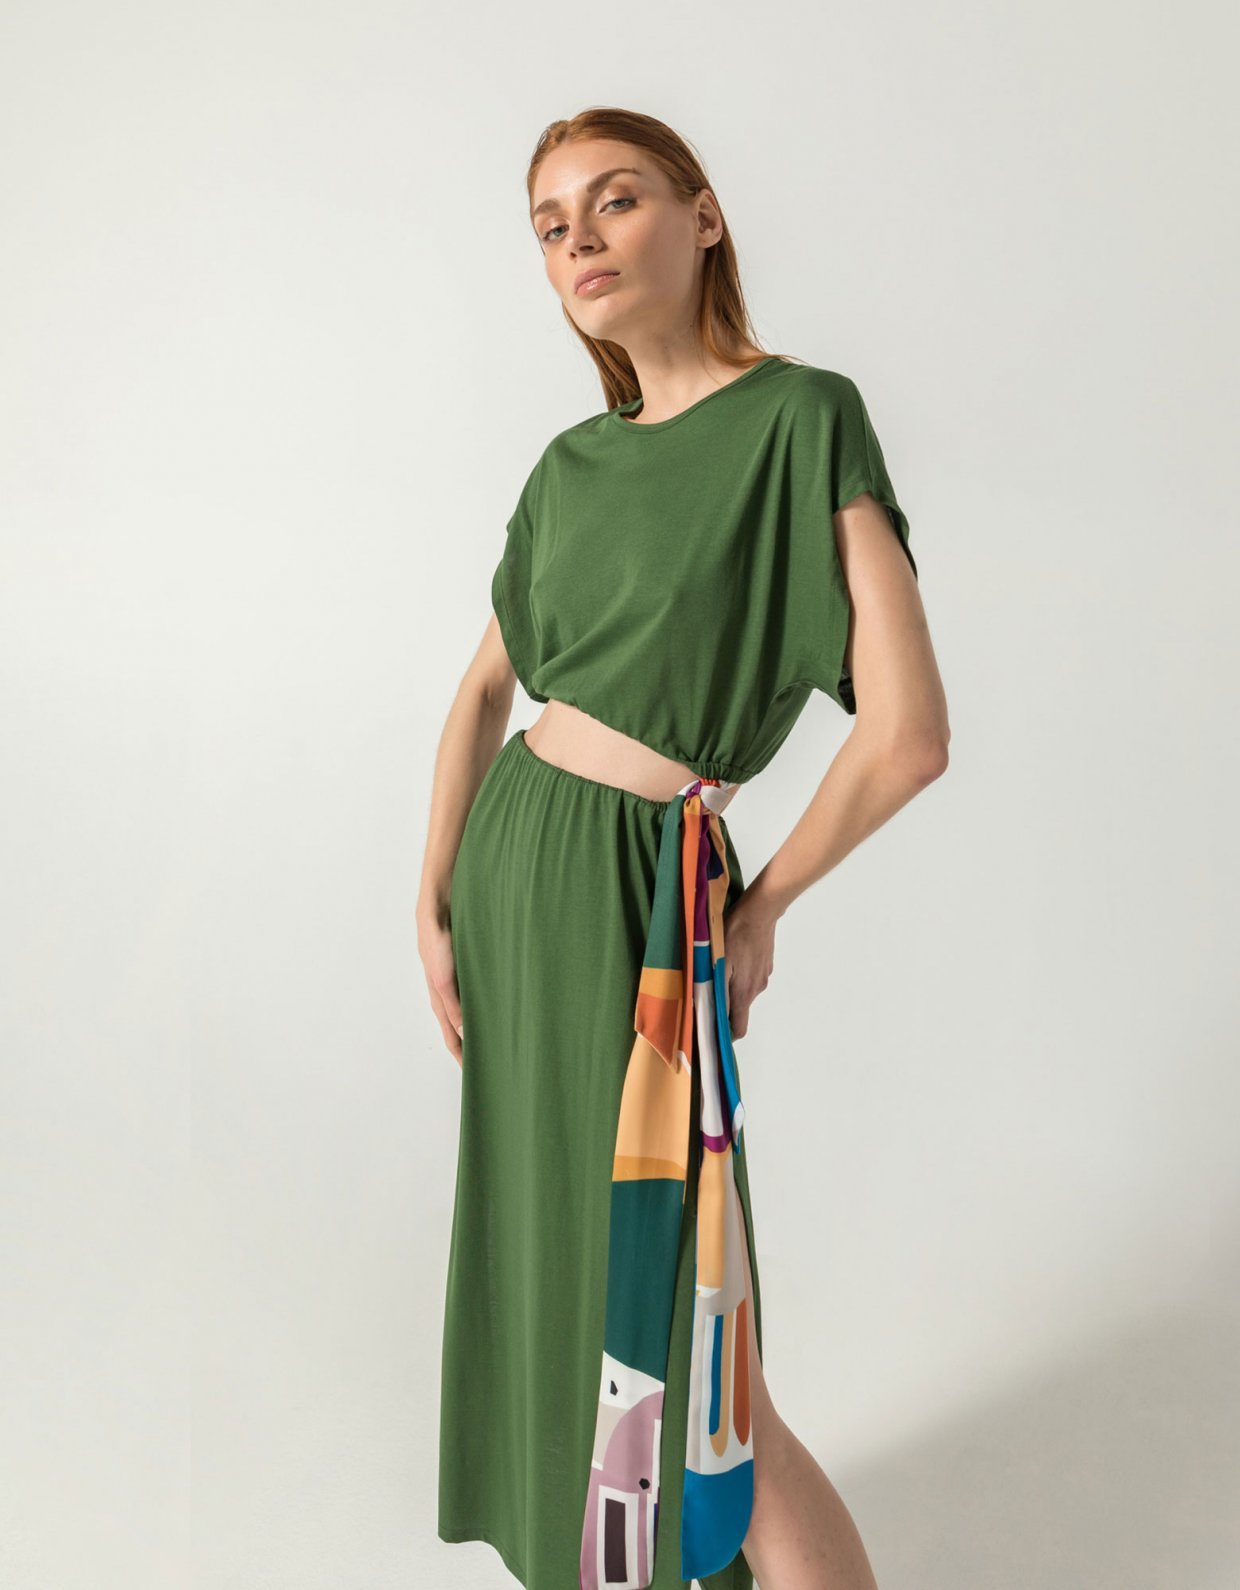 The Knl's Atene co-ords 2 in 1 dress green